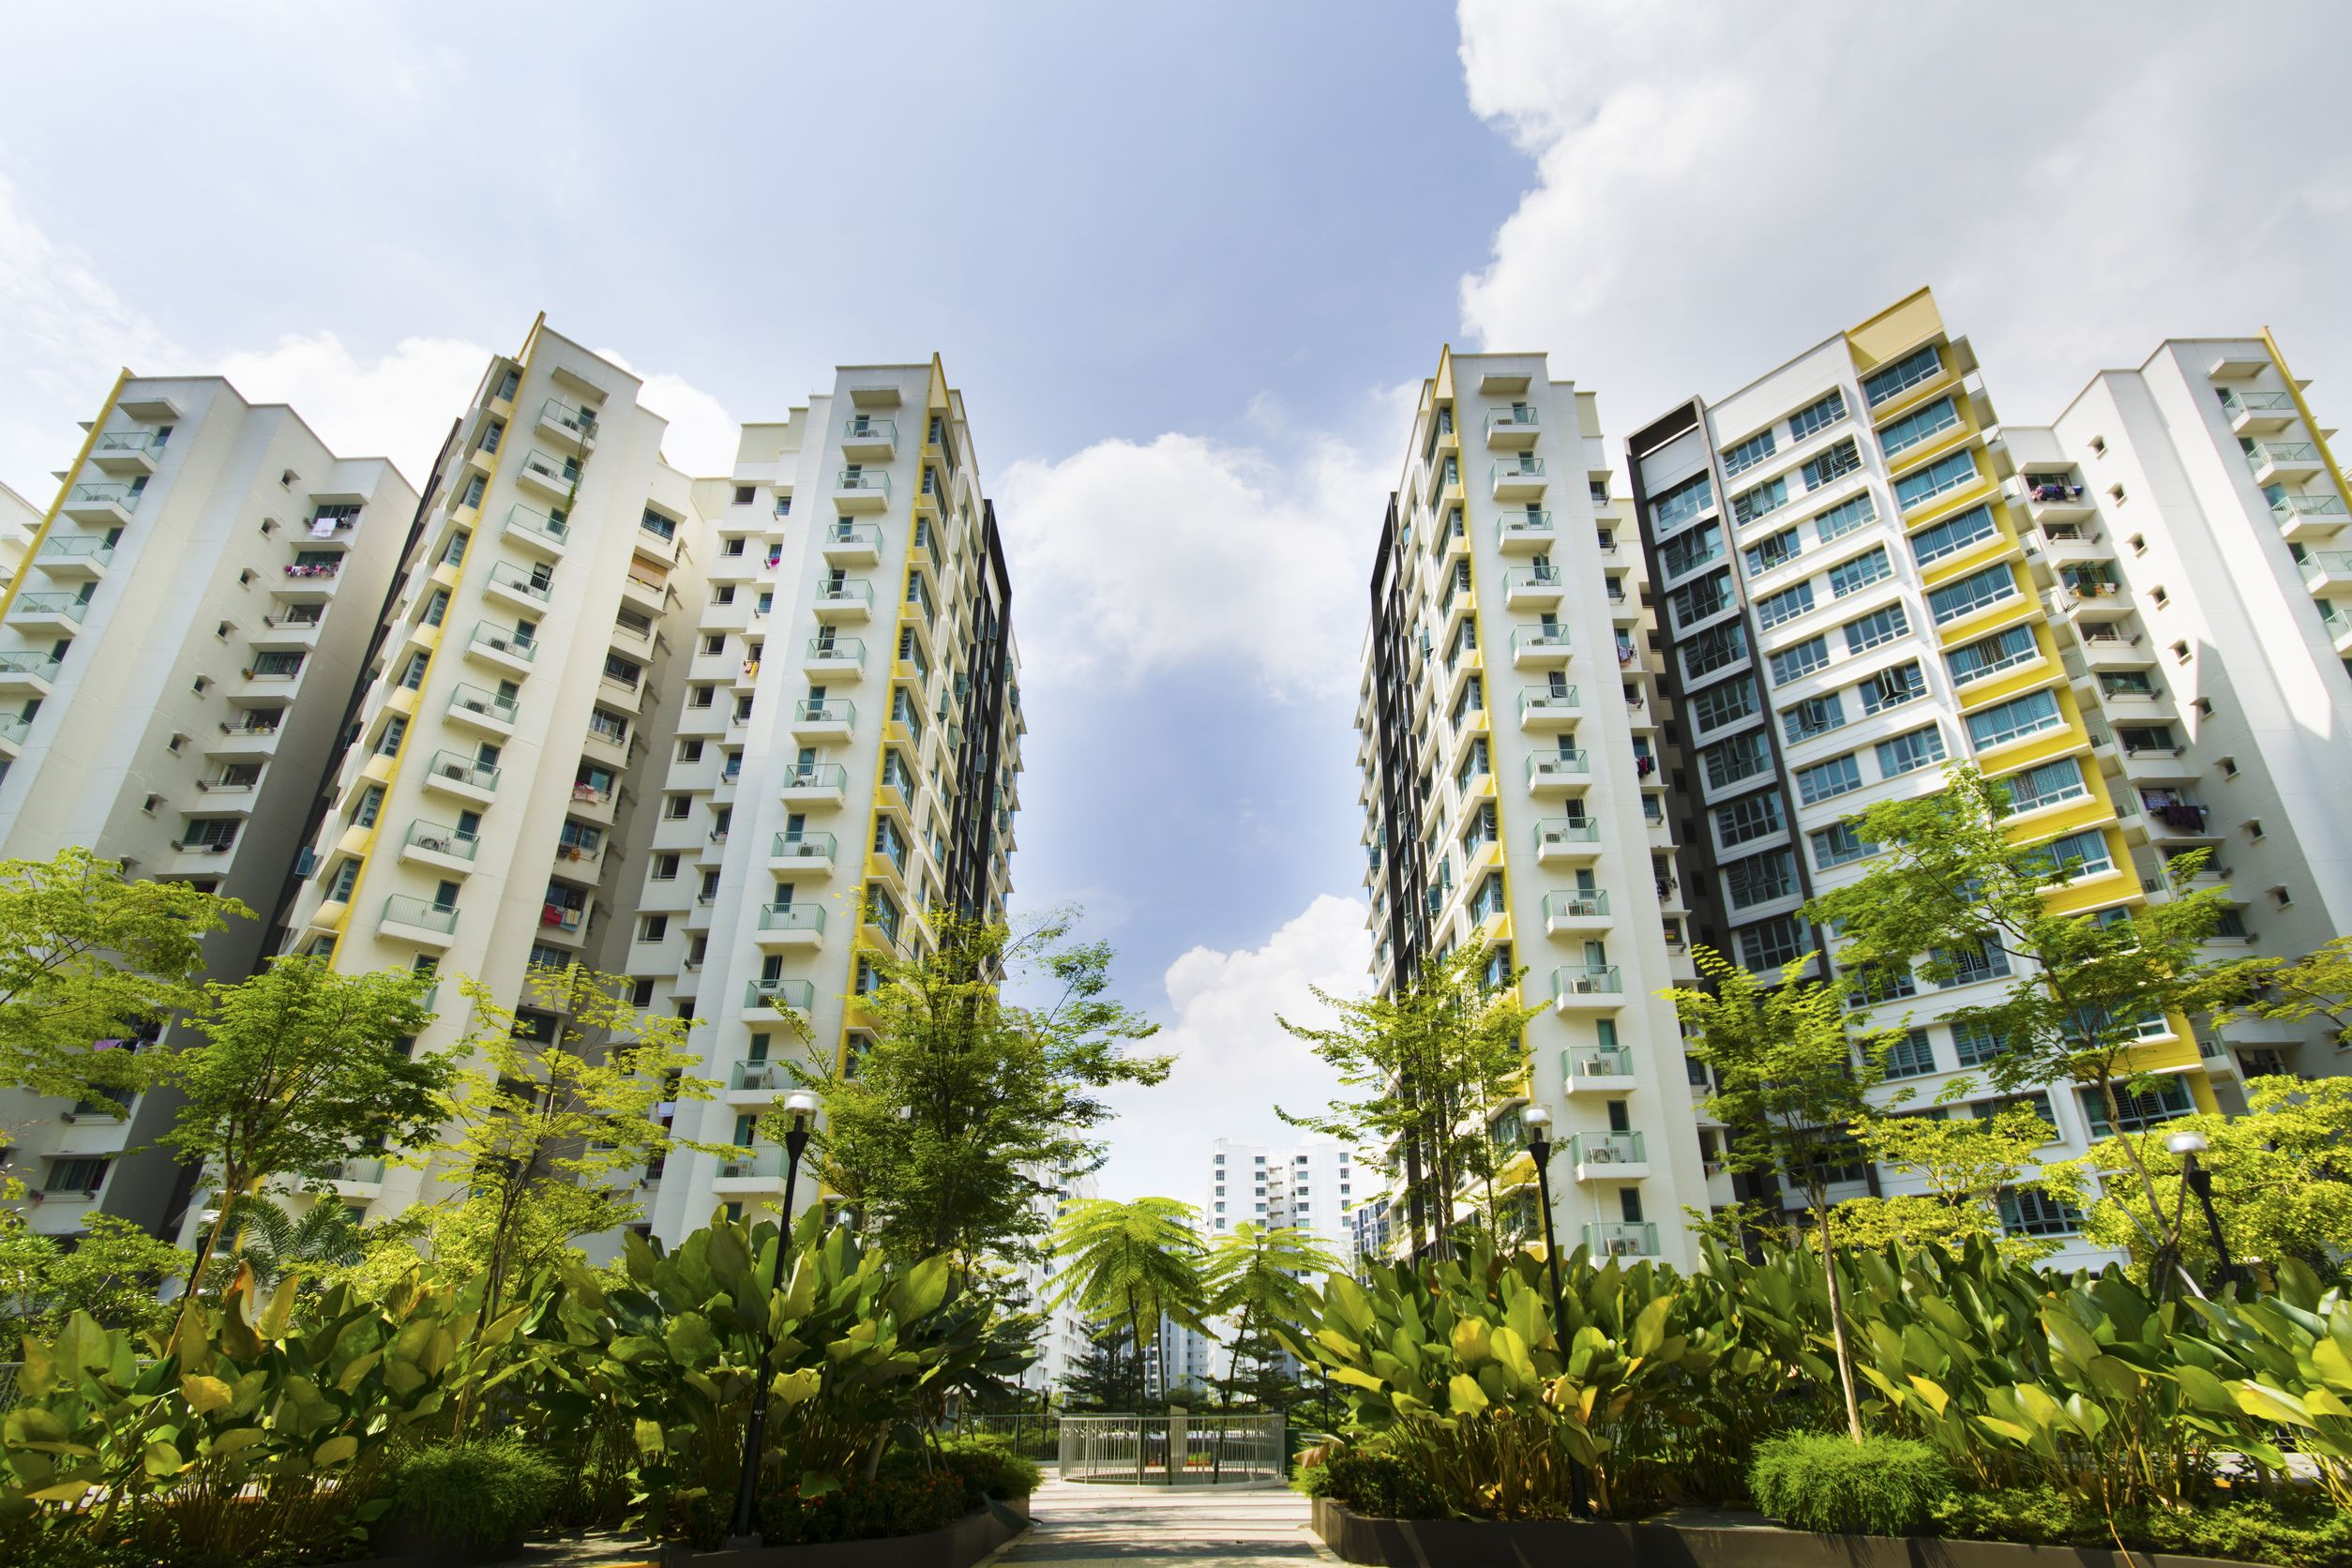 Stock Photo - New Singapore government appartments